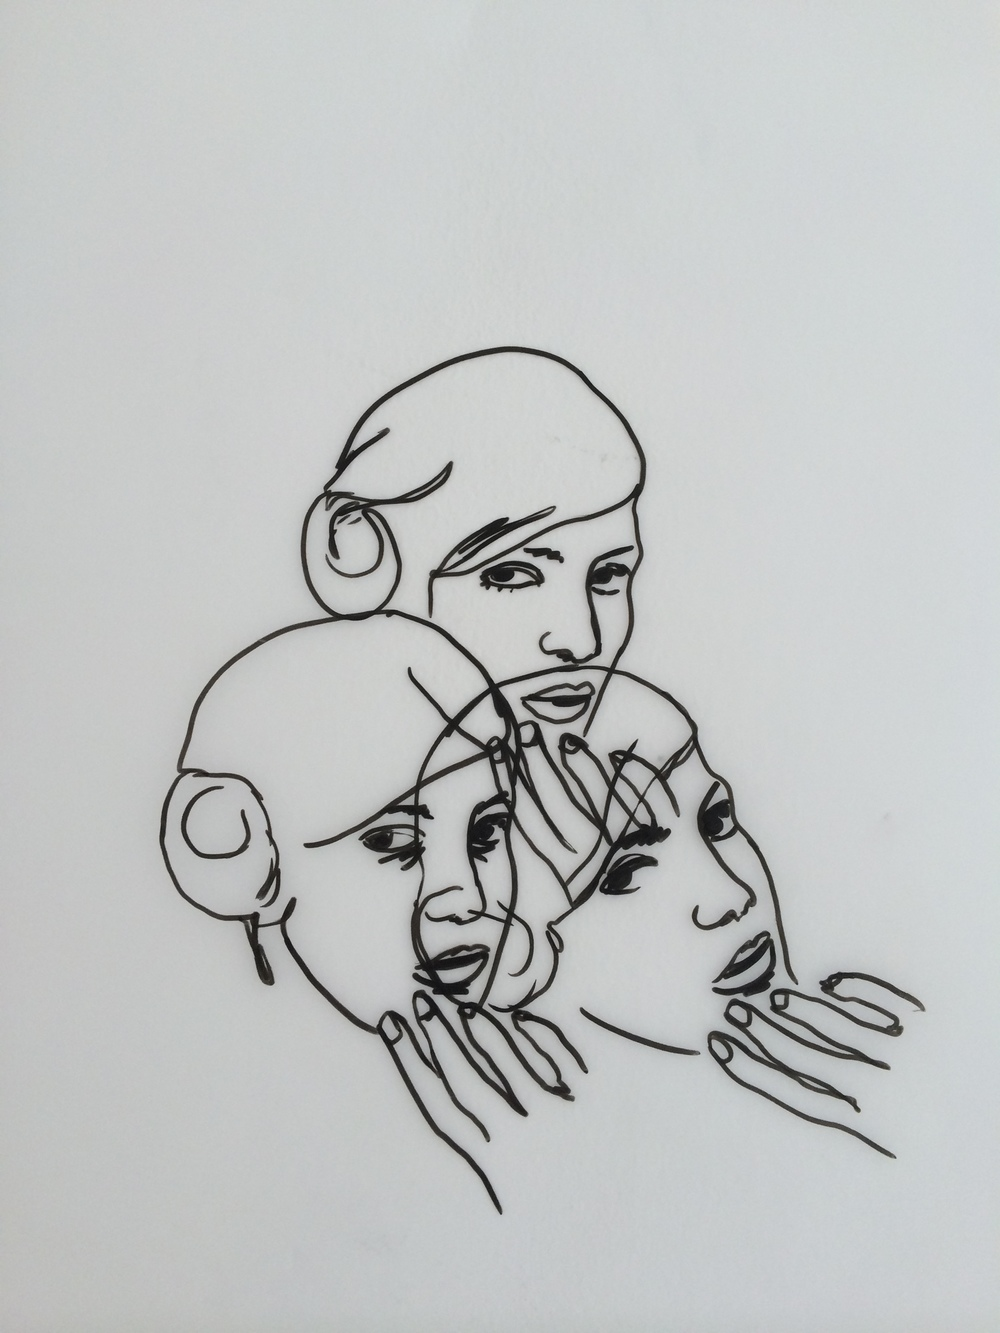 8/9/14 Tracing overlapping heads